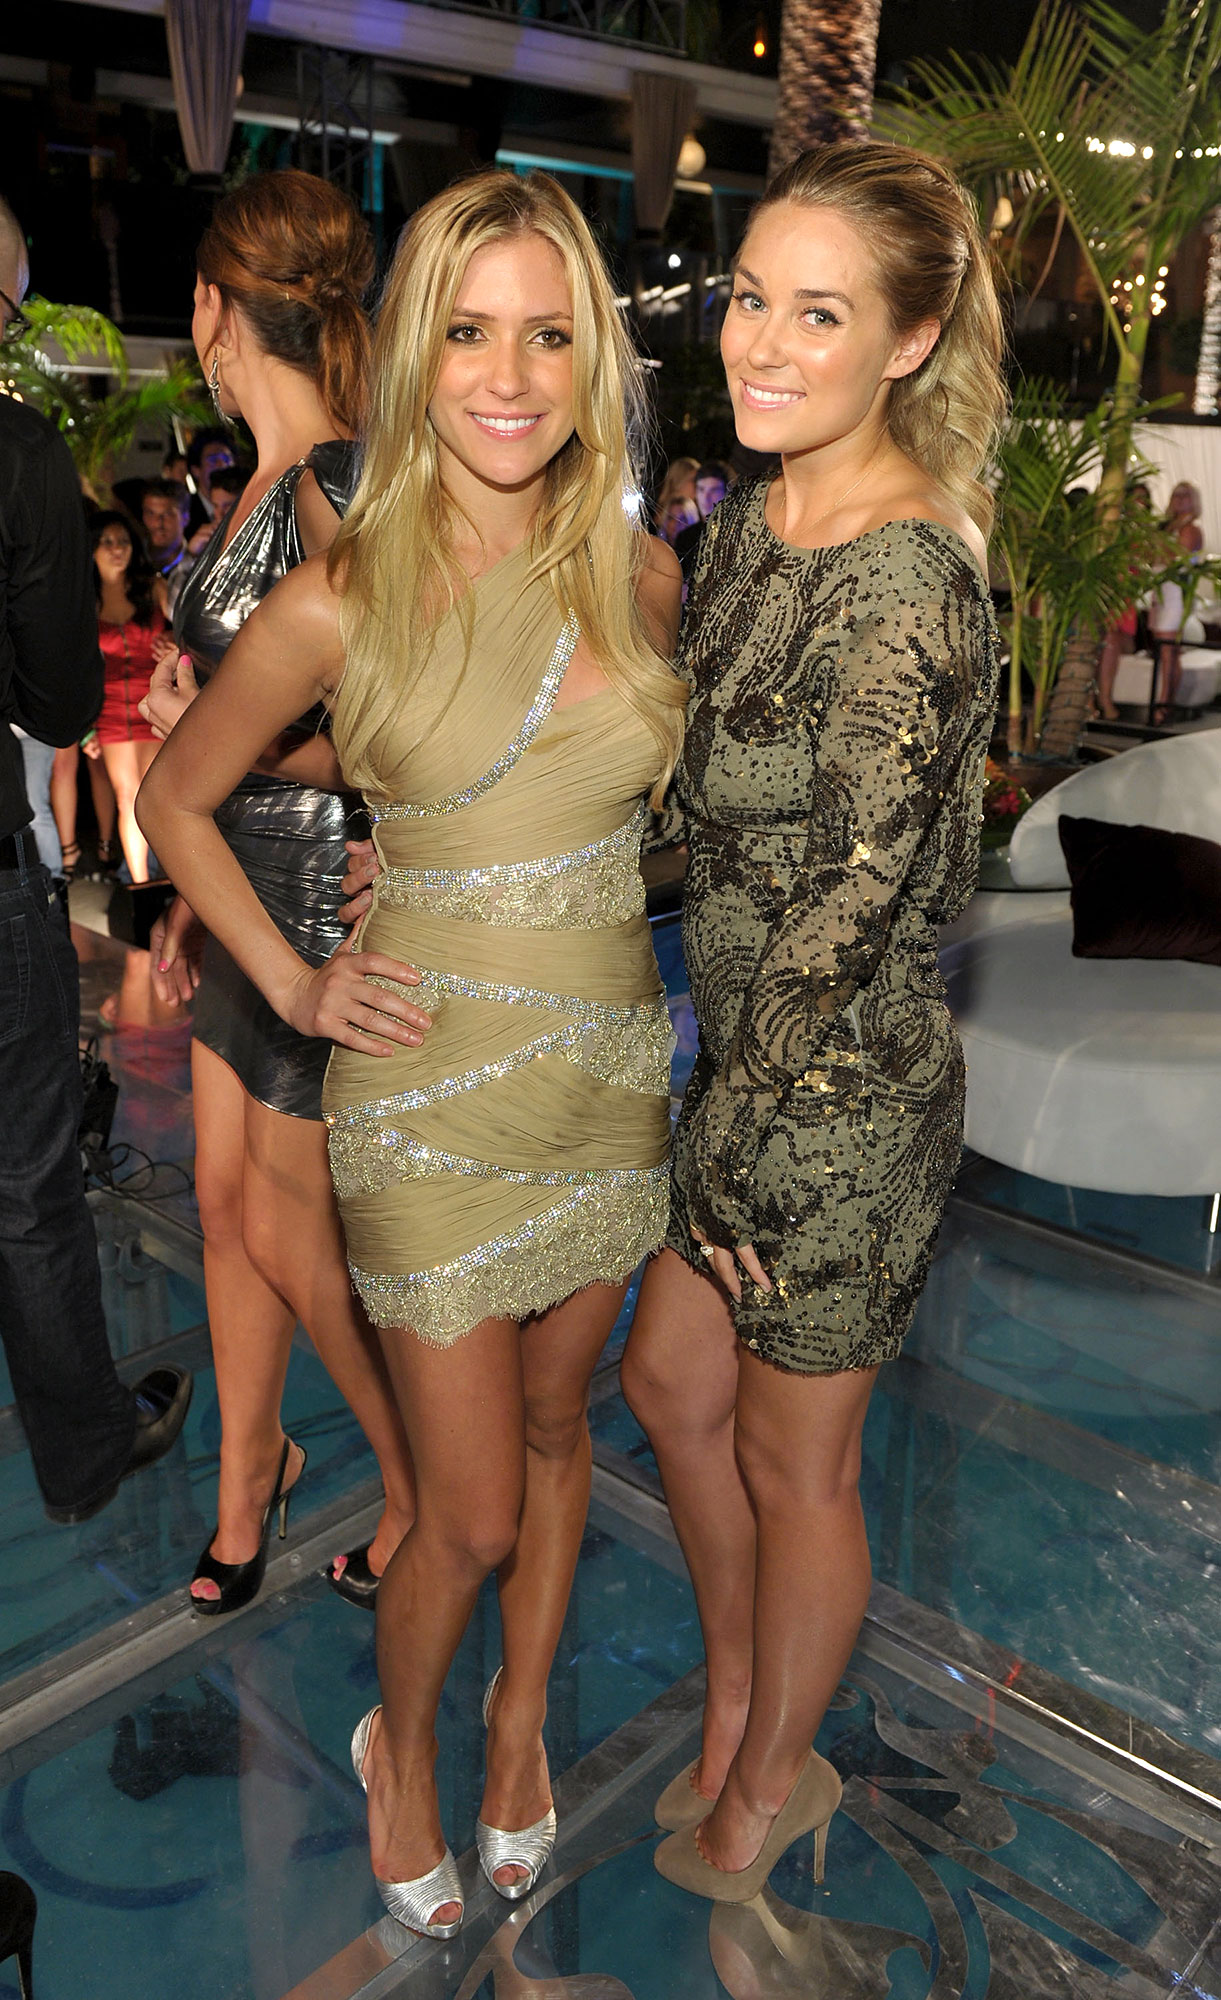 """Brody Jenner Reveals Whether Kristin Cavallari or Lauren Conrad Are More Likely to Show Up on 'The Hills' Revival? - Kristin Cavallari (L) and Lauren Conrad attend MTV's """"The Hills Live: A Hollywood Ending"""" Finale event held at The Roosevelt Hotel on July 13, 2010 in Hollywood, California."""